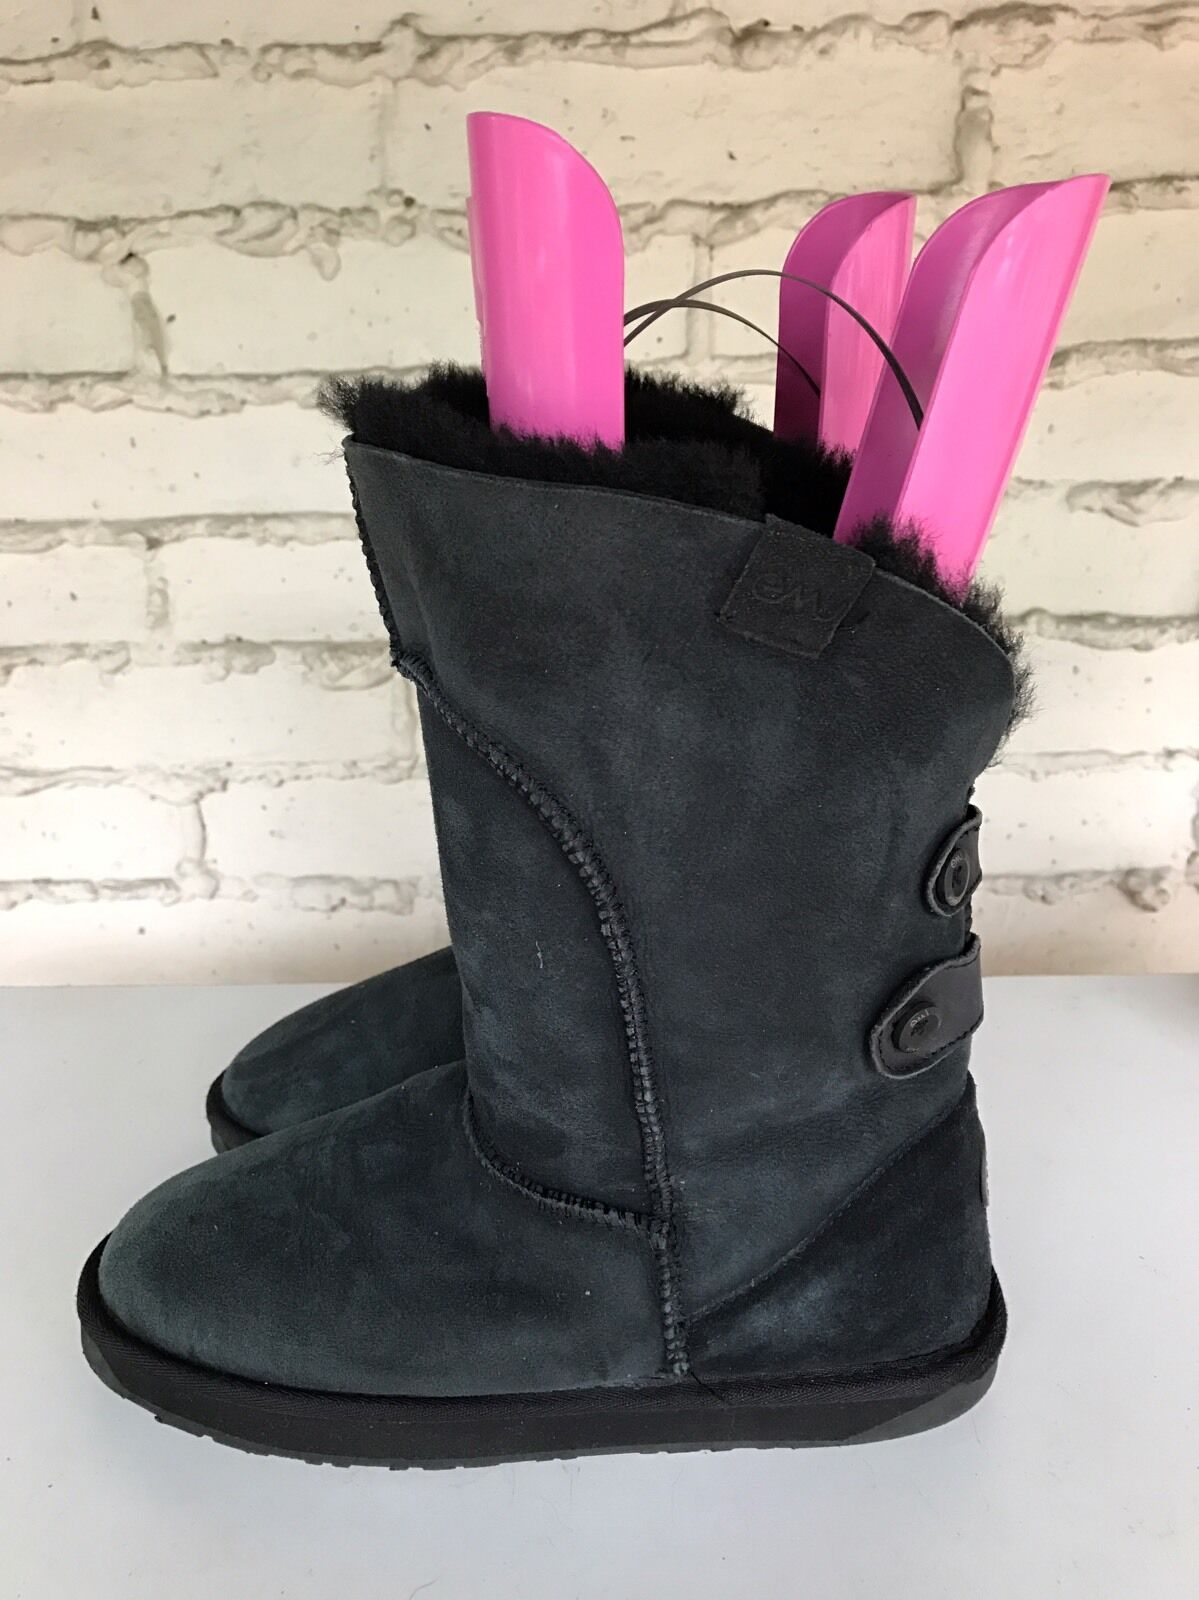 EMU WOMEN'S AUSTRALIA ALBA BOOT BUTTON SHEEPSKIN LEATHER CHARCOAL US 10